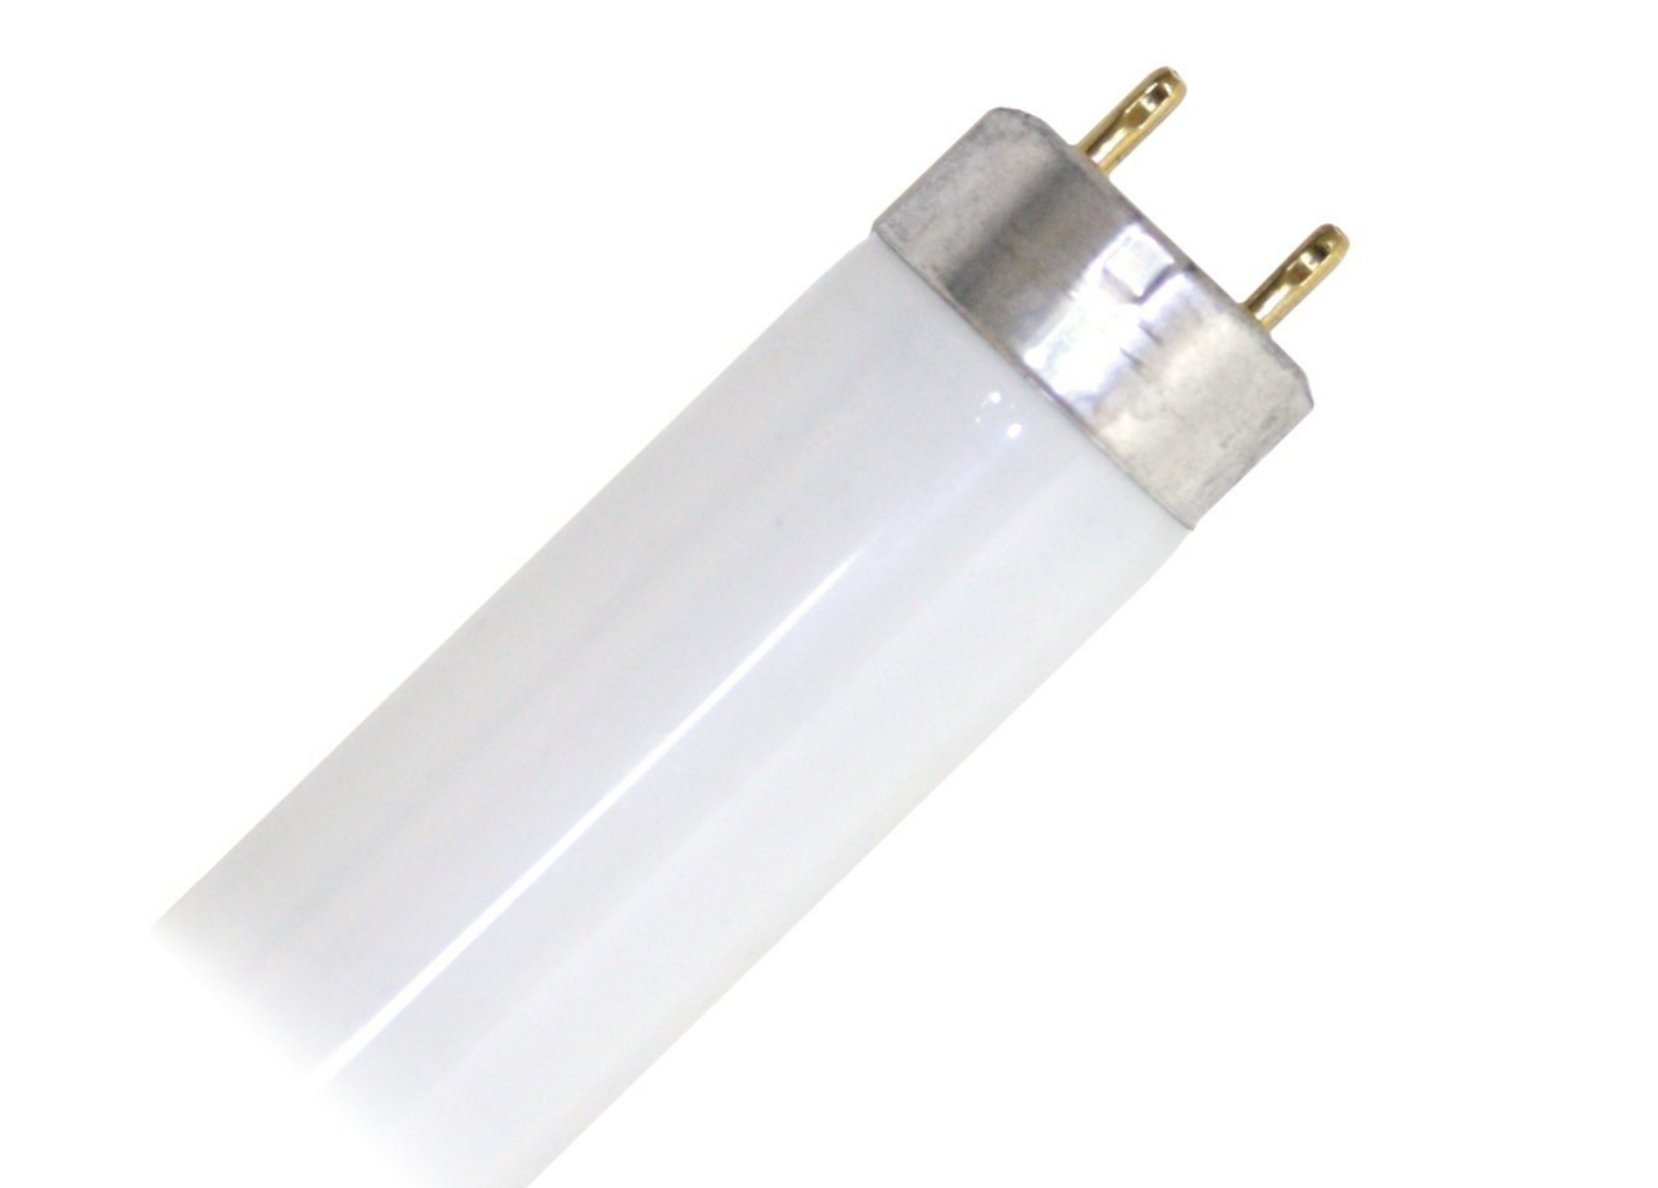 Westinghouse F15T8/CWX 15 Watt T8 Fluorescent Tube Light Bulb Cool White, 4100K Replaces Philips F15T8/COOL WHITE PLUS/18 ALTO F15T8/CW/ALTO F15T8/CW/ECO